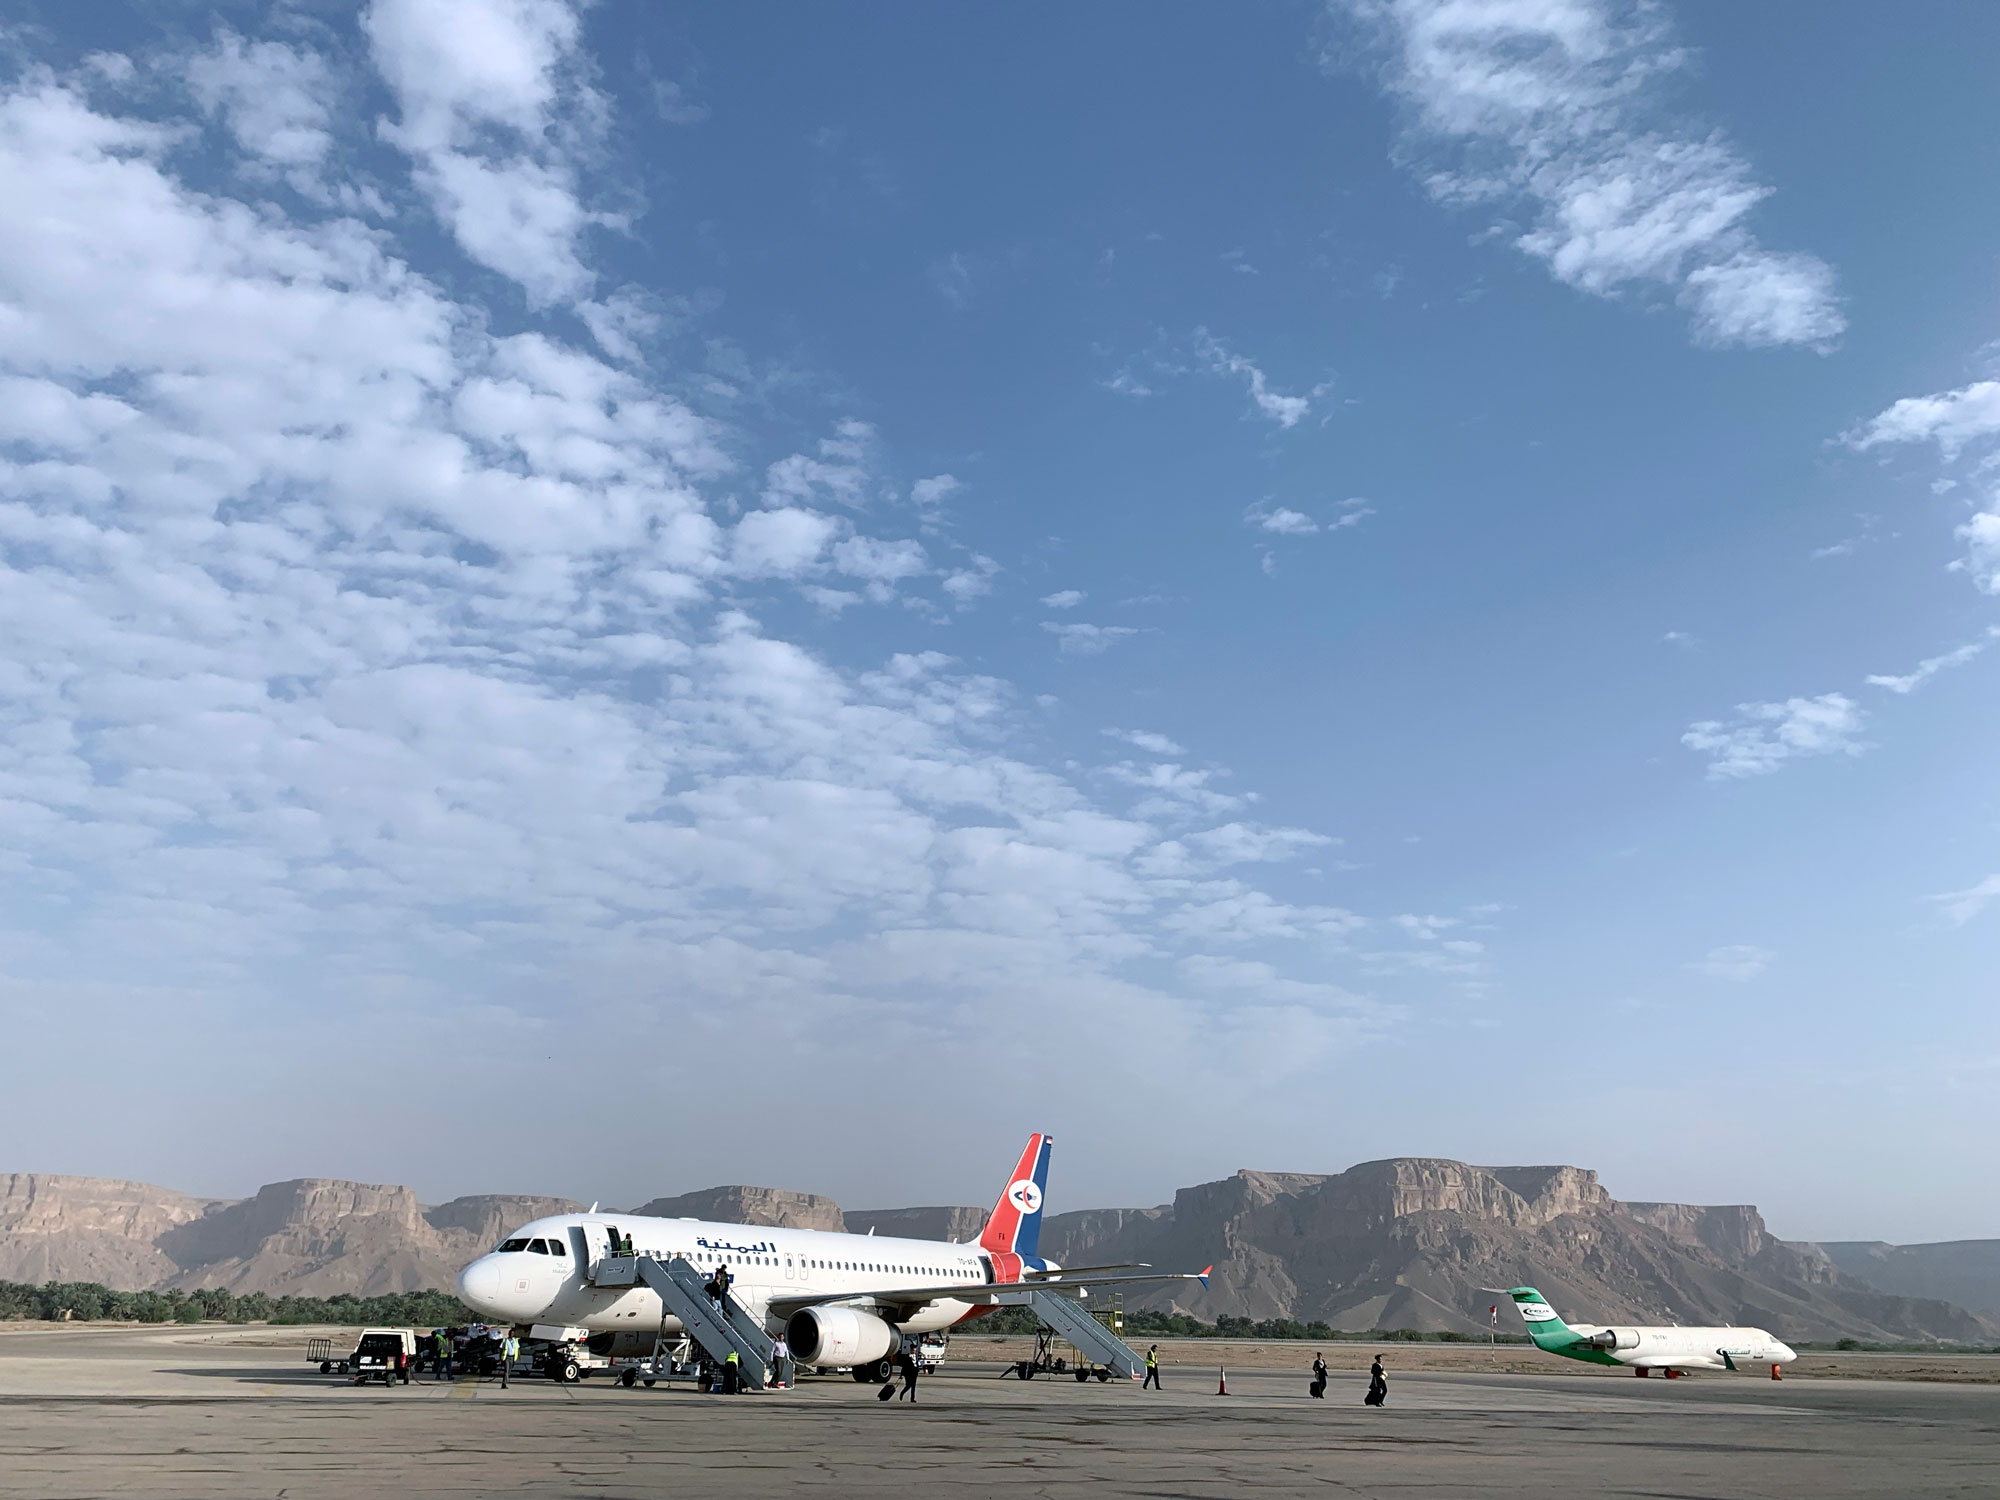 The Yemenia flight from Cairo to Seiyun to Socotra waits for transit passengers at Seiyun Airport.